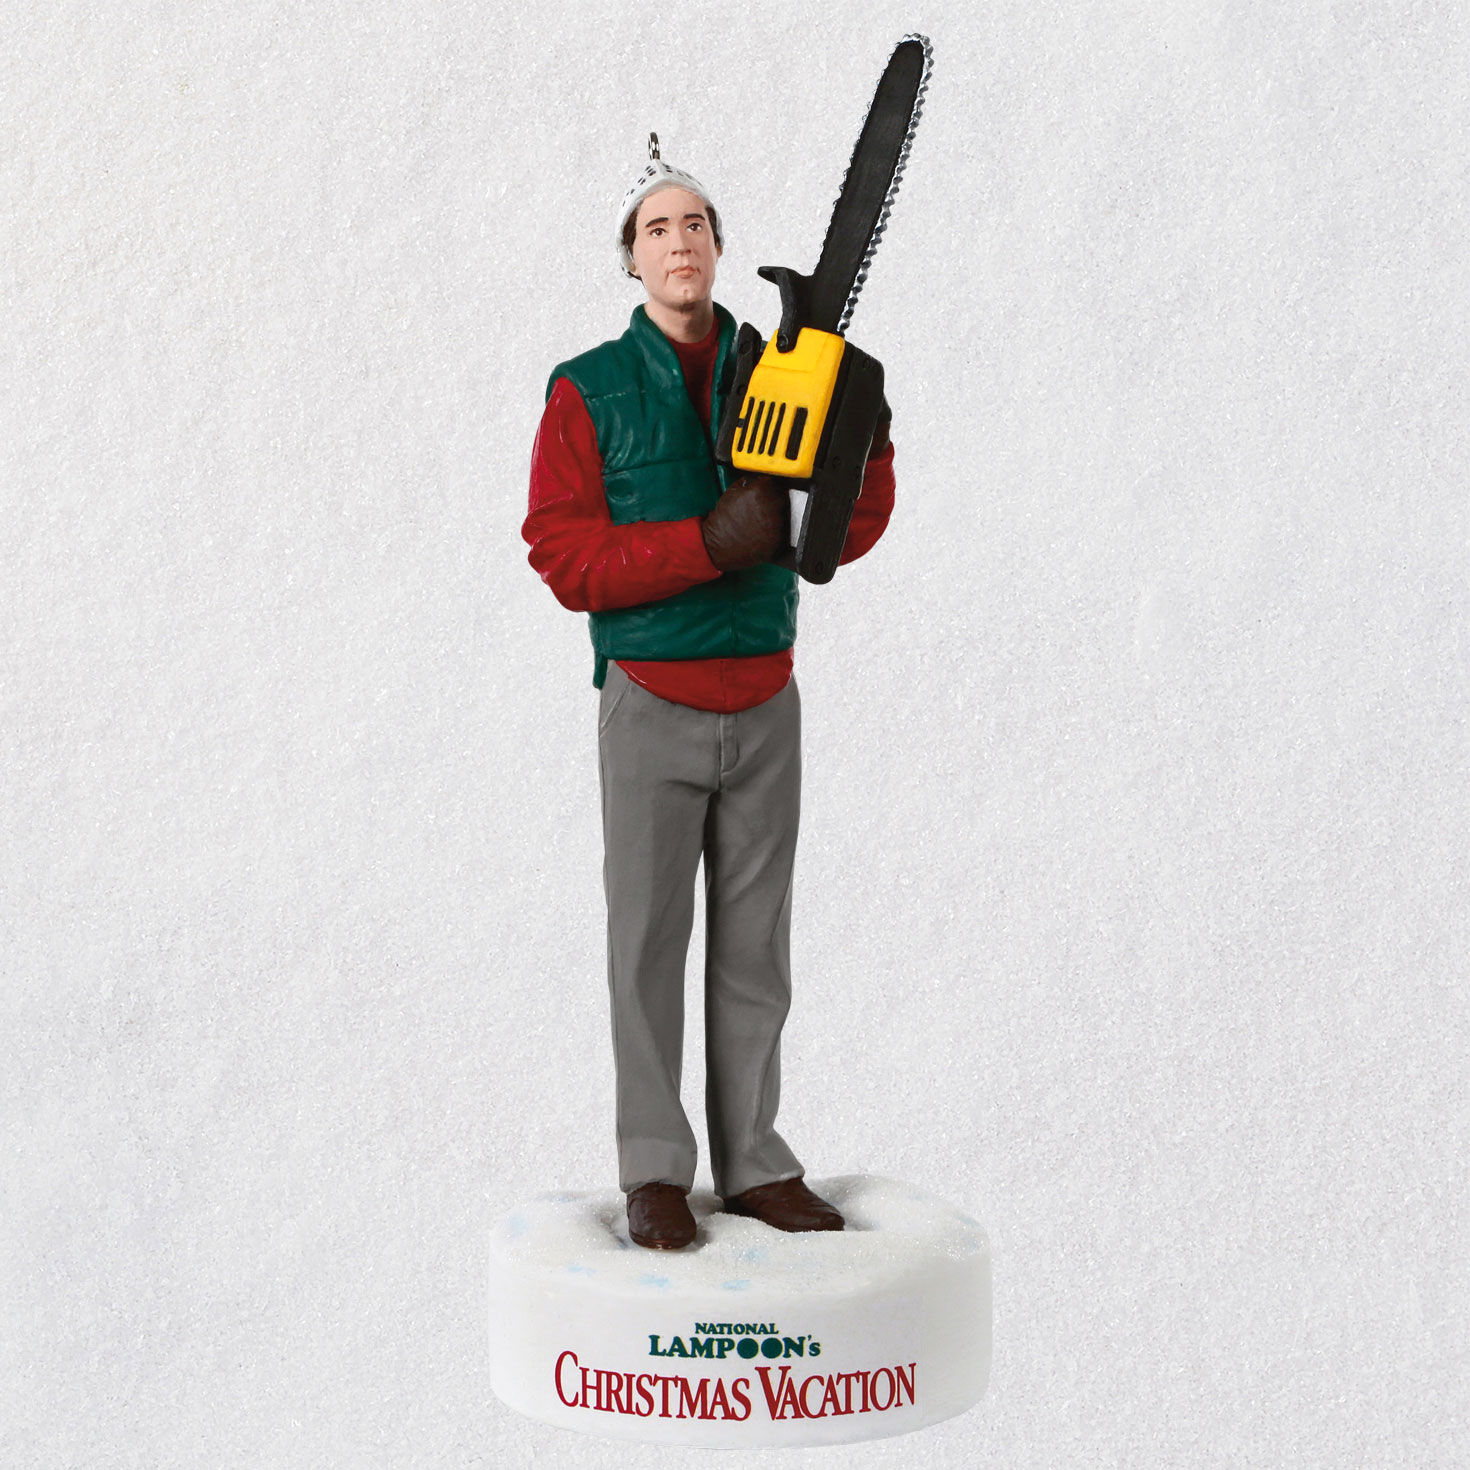 2020 Christmas Vacation National Lampoon's Christmas Vacation™ Trimming the Tree Ornament